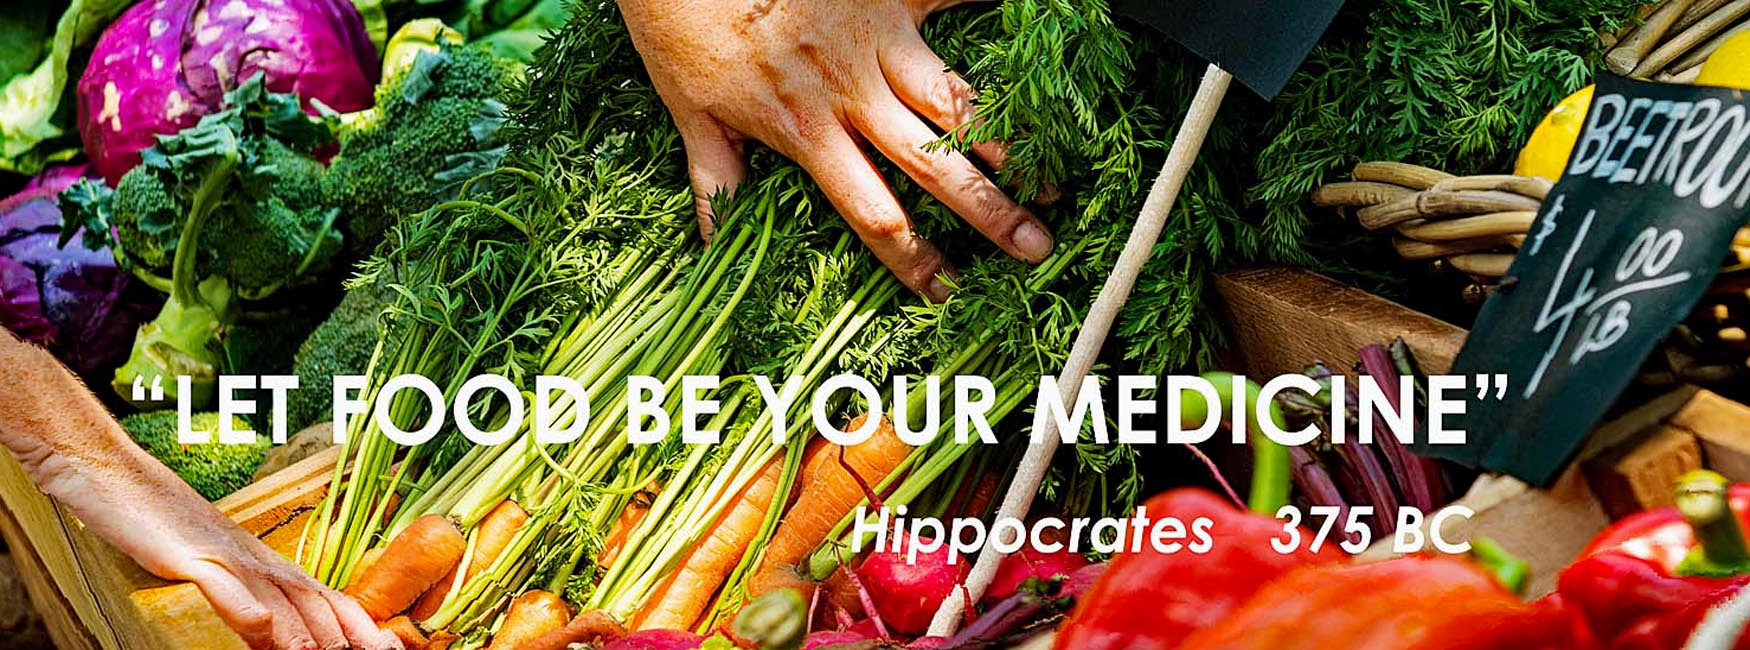 Let Food Be Your Medicine - Hippocrates 375 BC - vegetables at the market